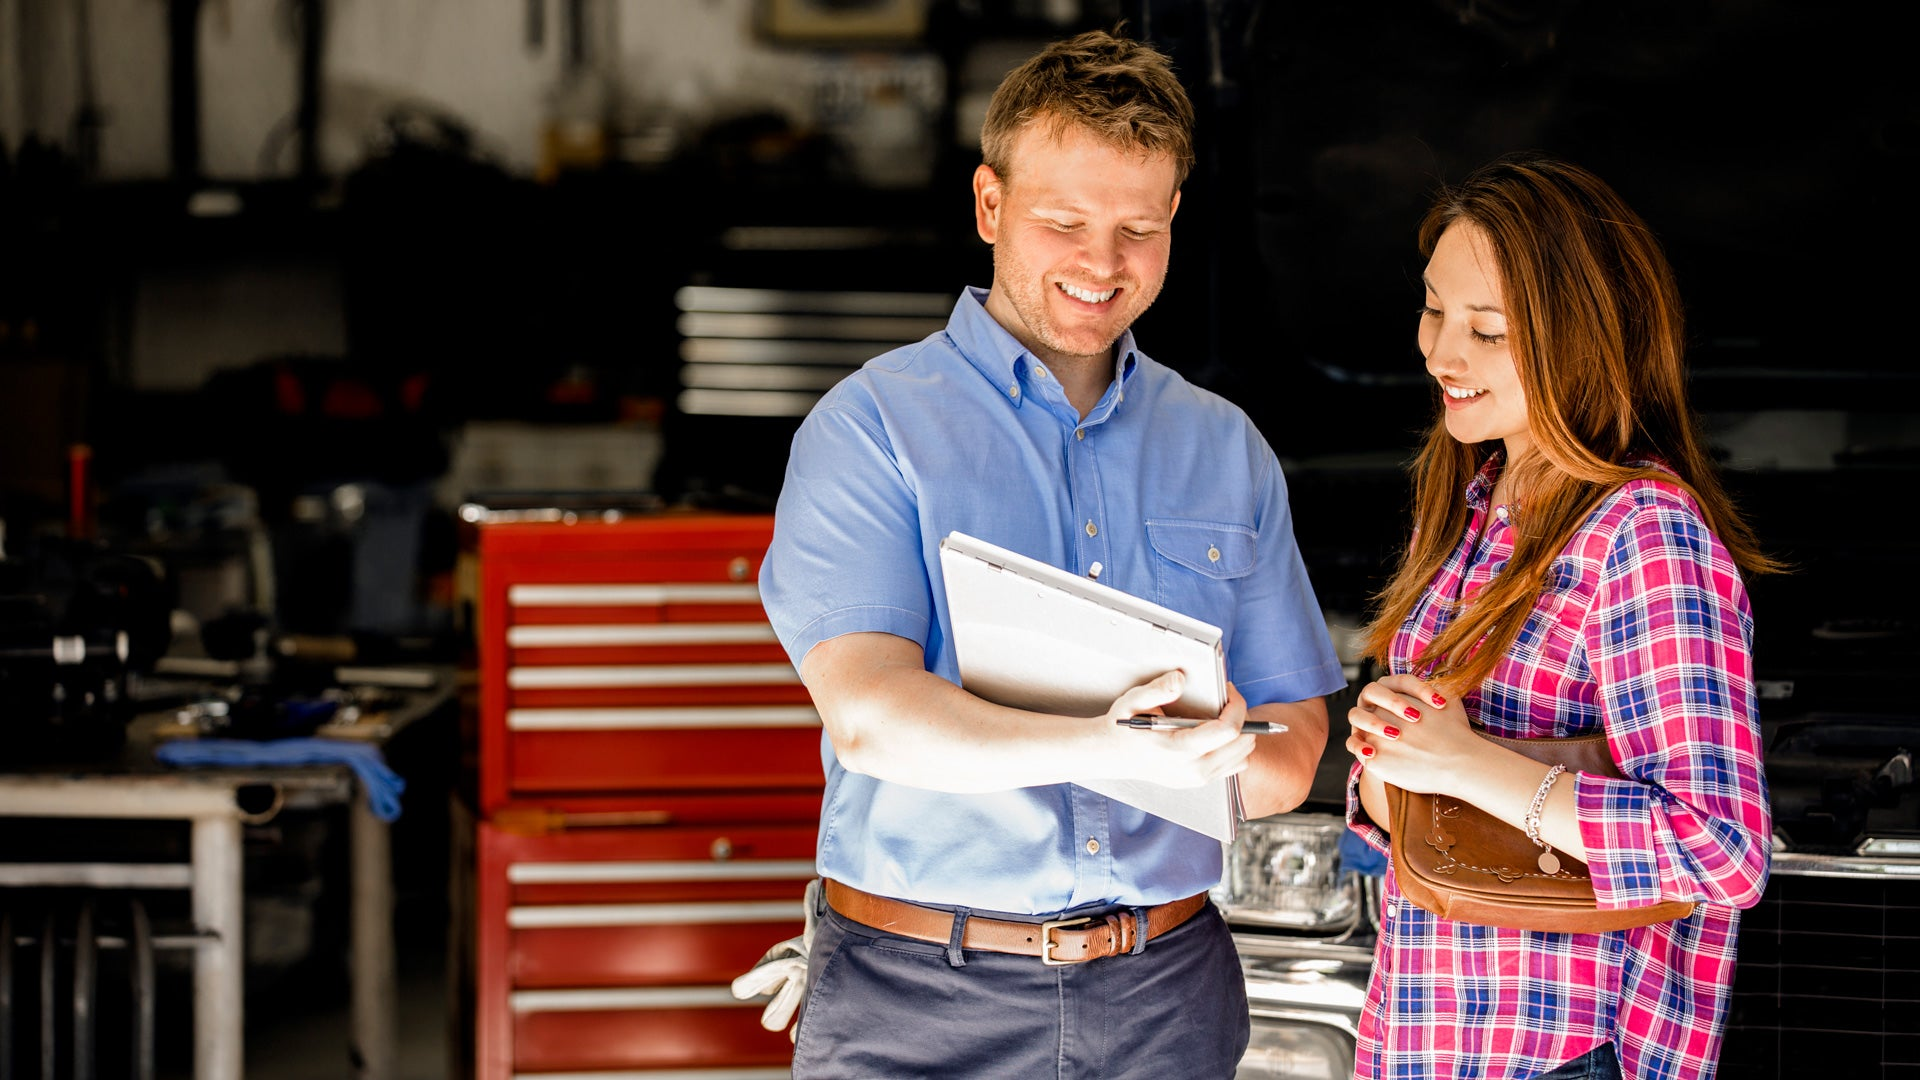 woman-in-car-garage-with-mechanic-insights.jpg